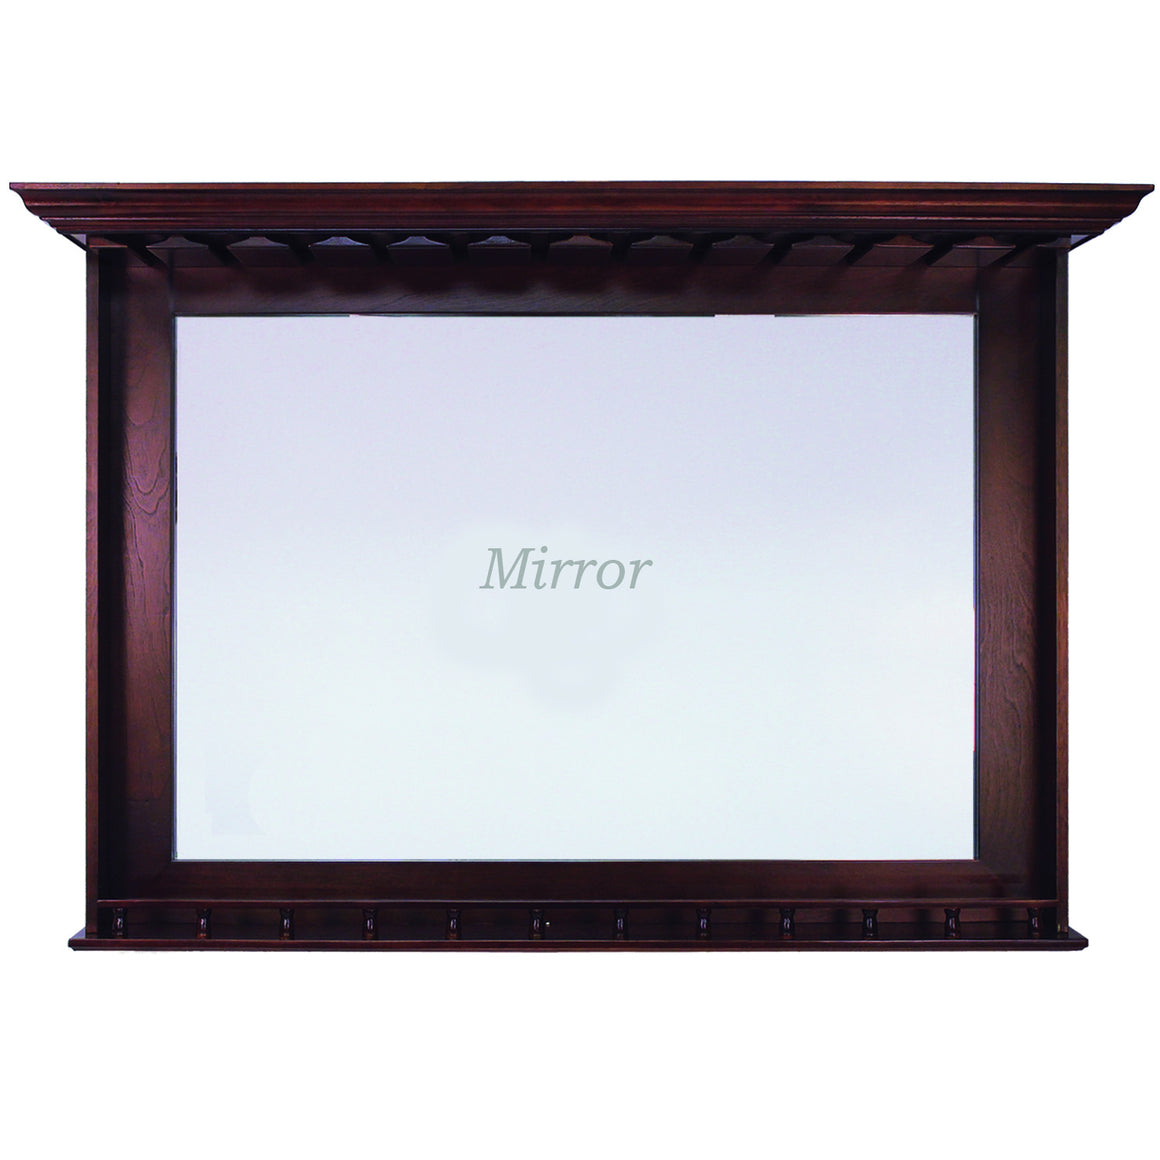 Bar Mirror - English Tudor Finish 52 x 10 x 36 in - Man Cave Boutique